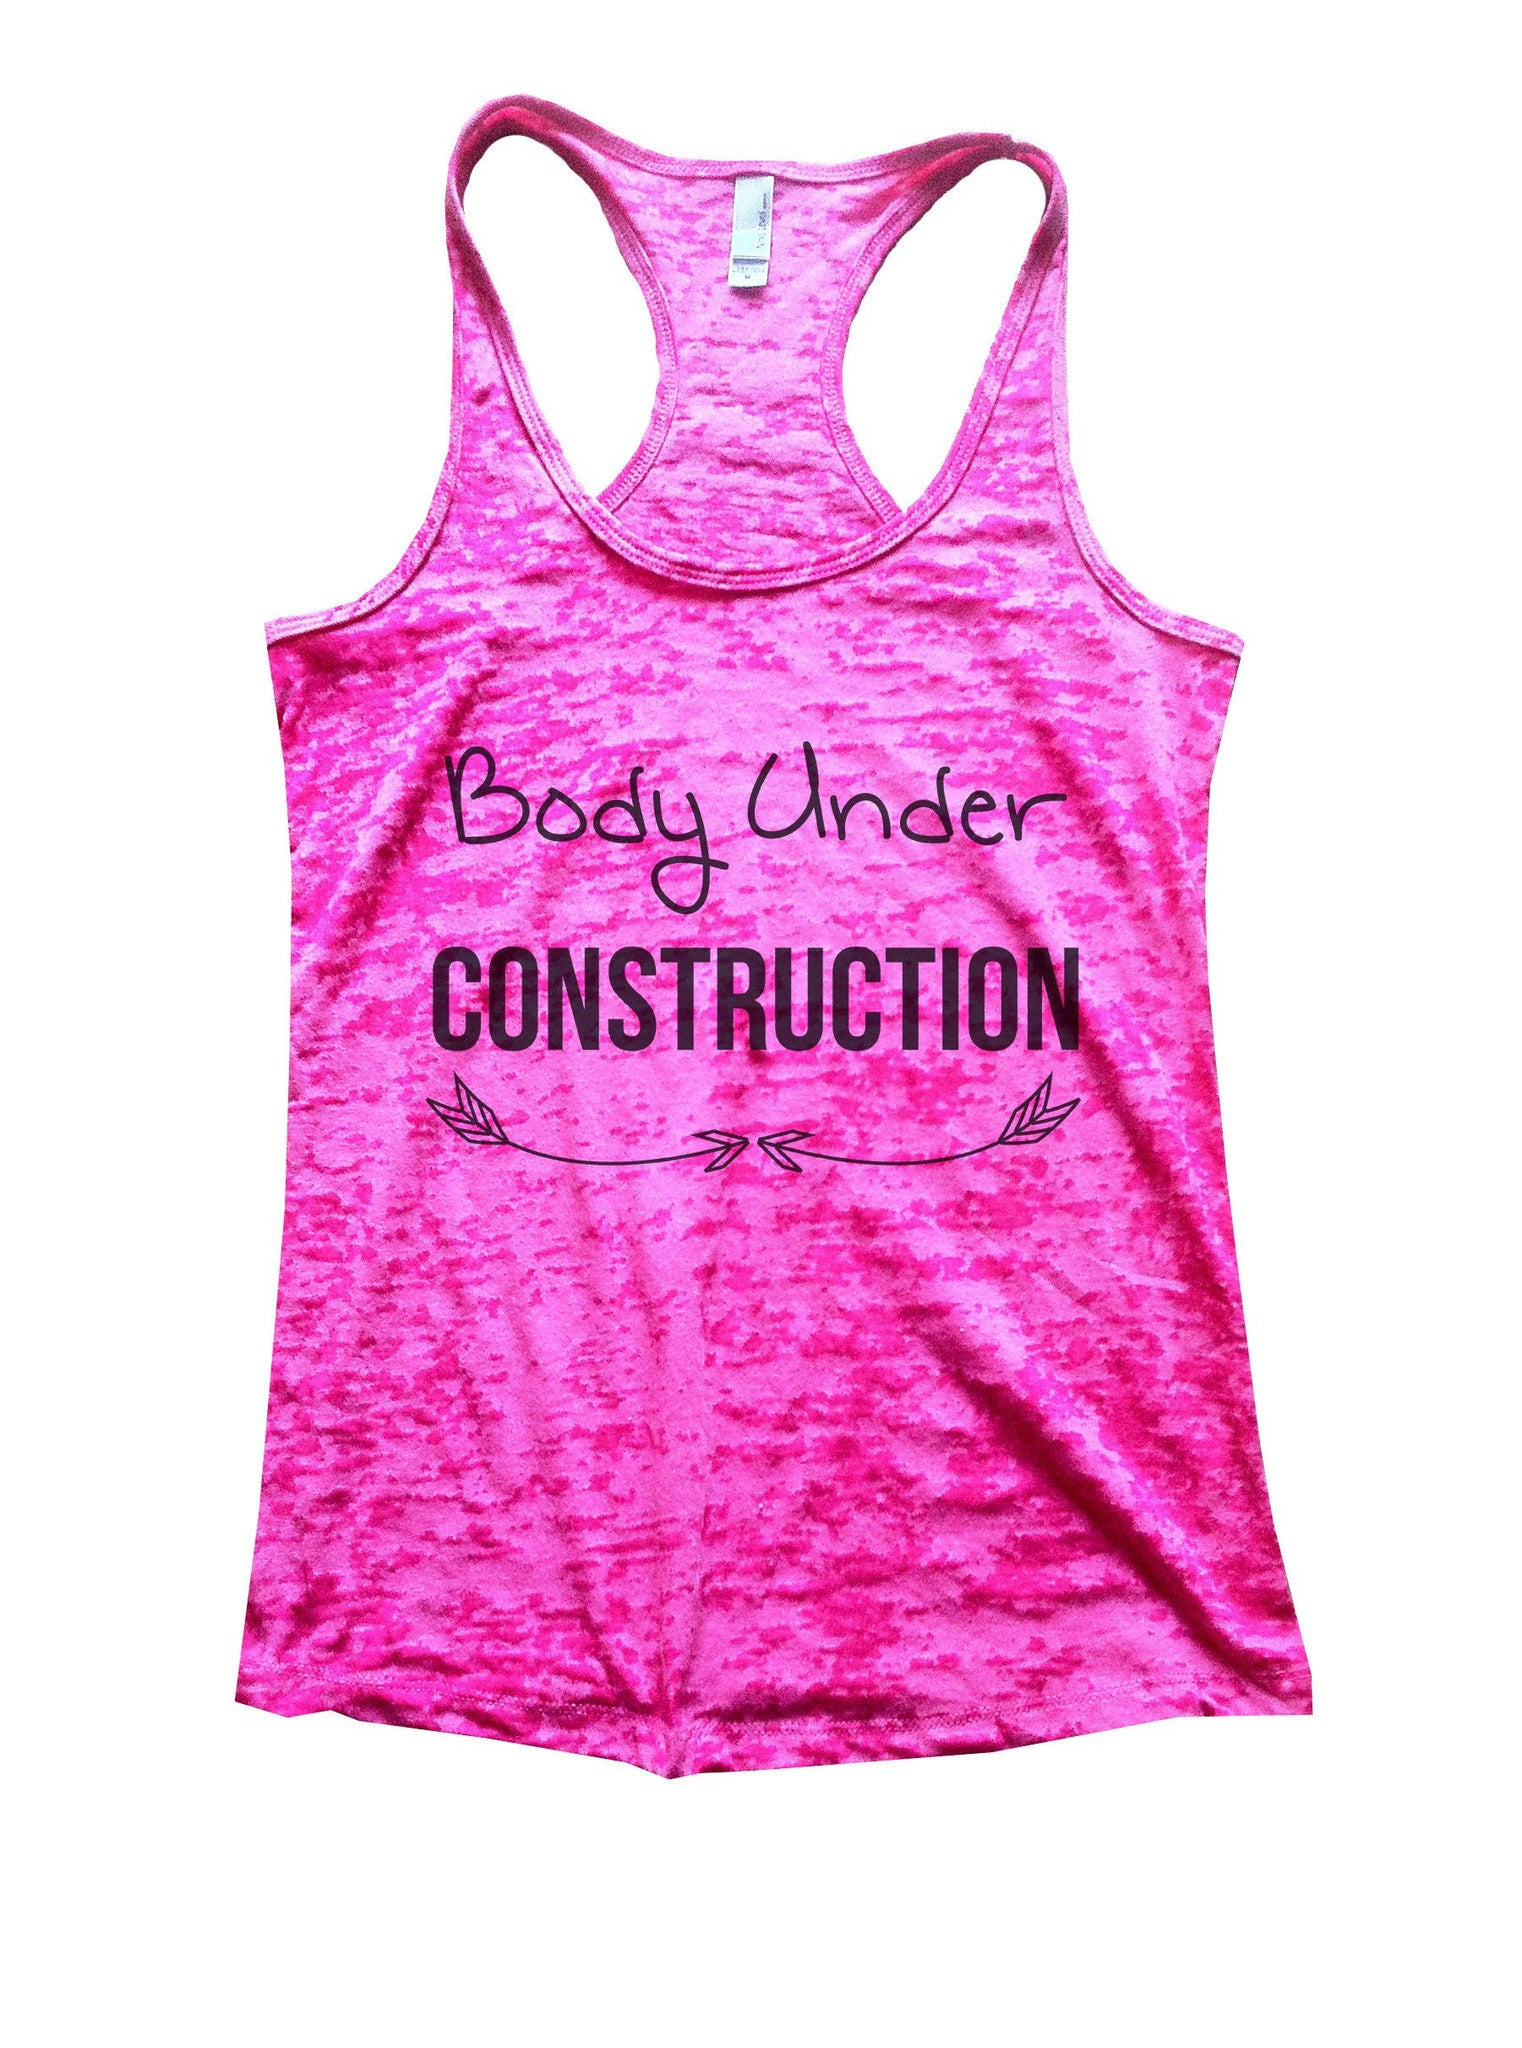 Body Under Construction Burnout Tank Top By BurnoutTankTops.com - 877 - Funny Shirts Tank Tops Burnouts and Triblends  - 5